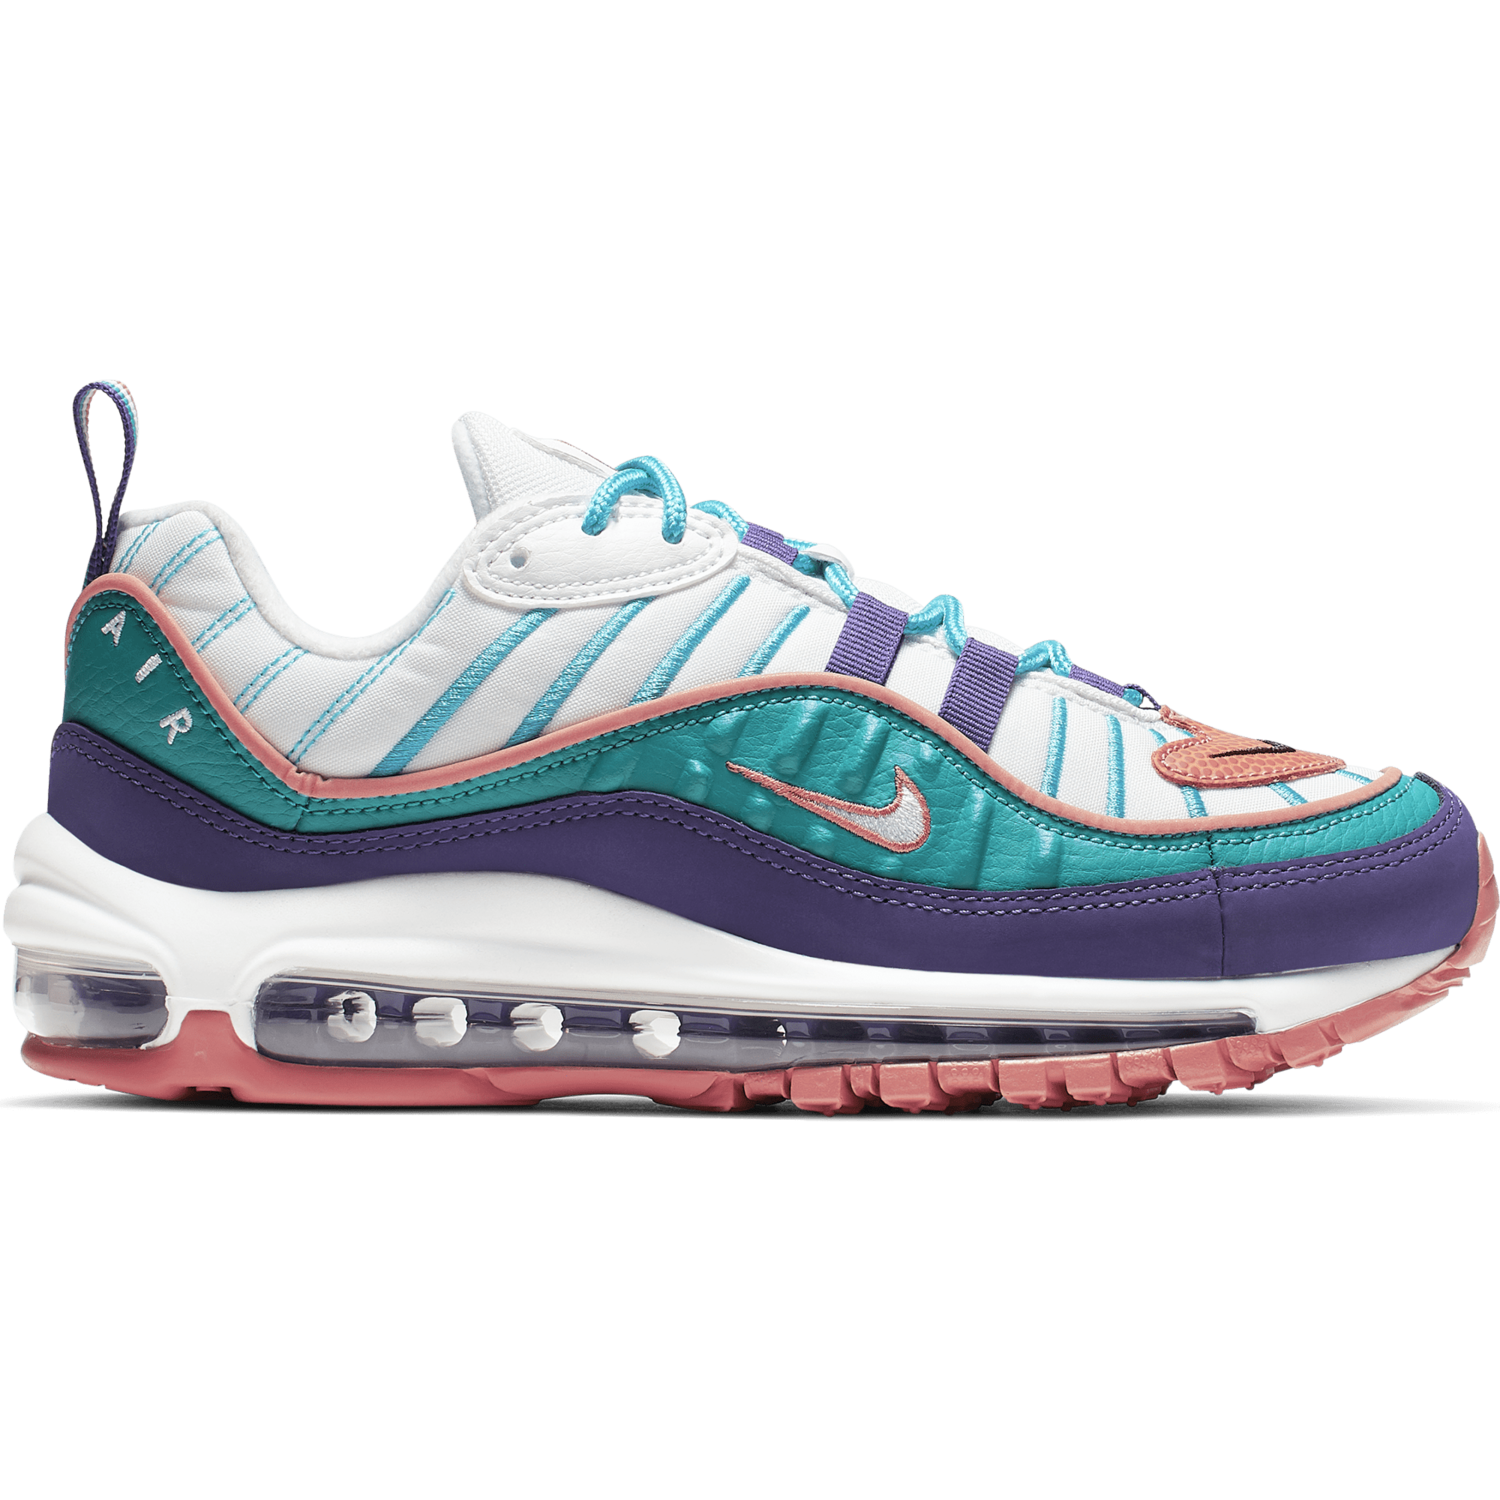 50d5abf19 Now Available: GS Nike Air Max 98